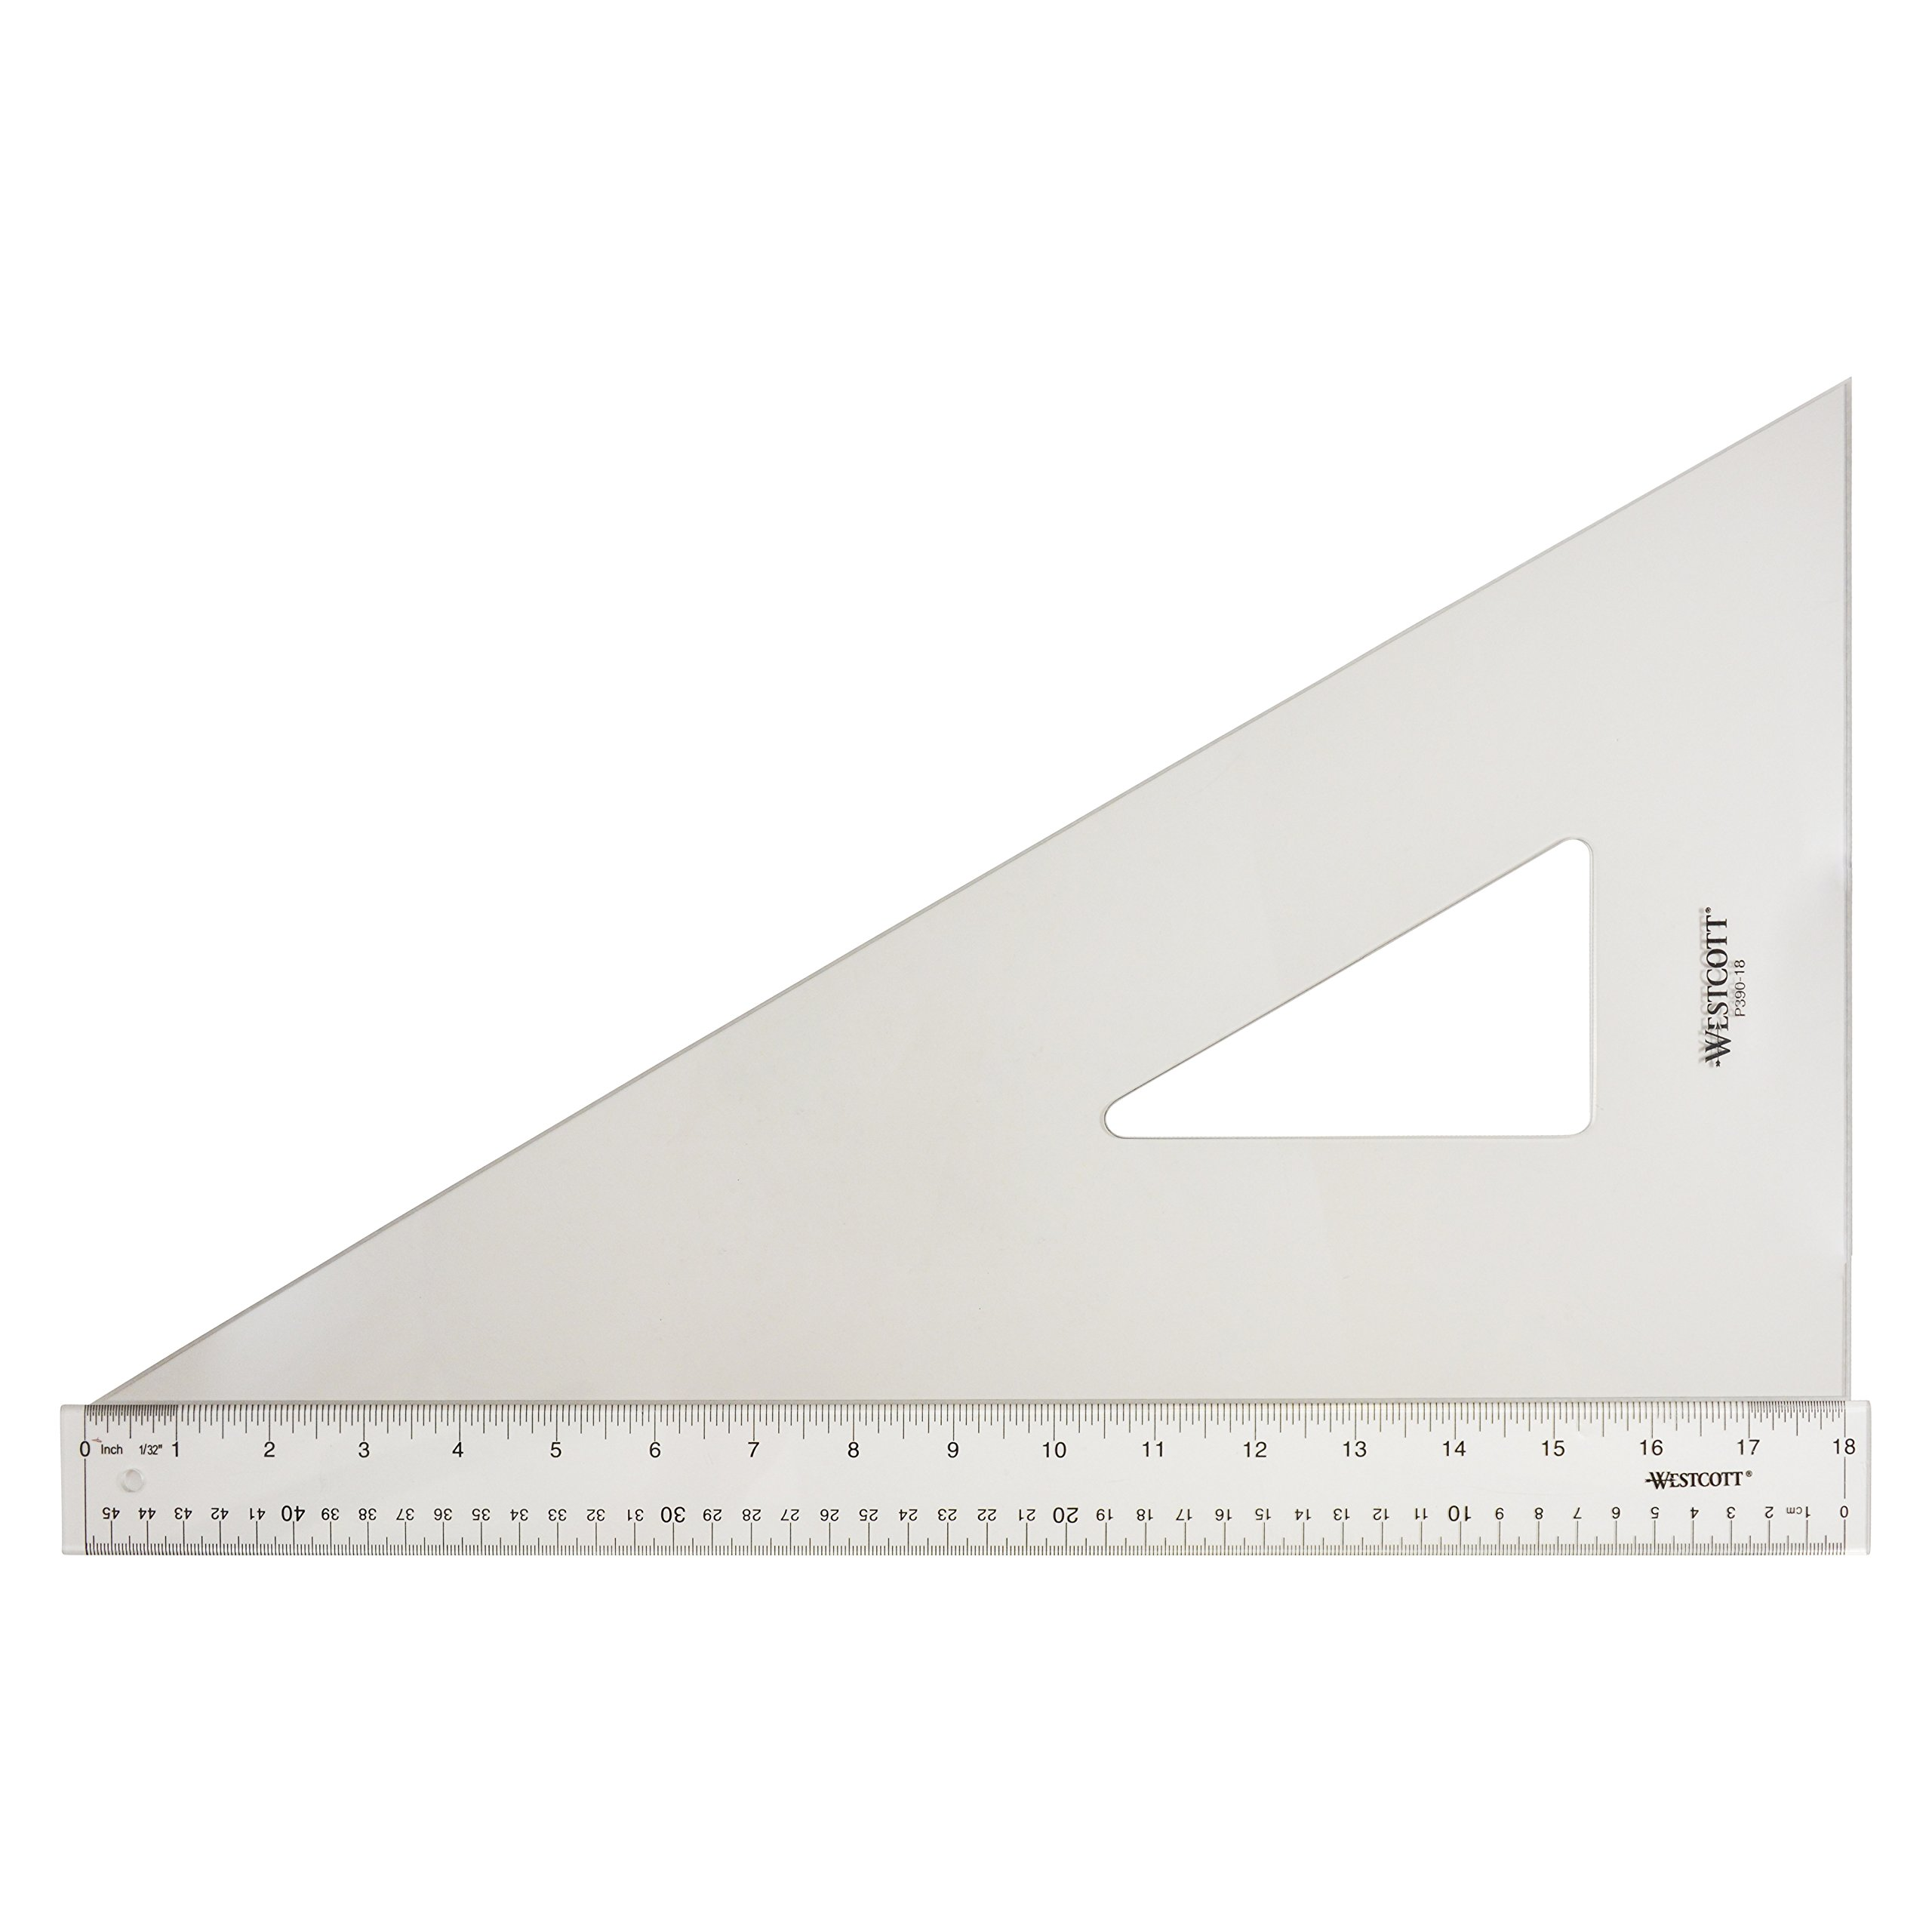 Westcott Professional Triangle, 18'', 30/60 Degree, Transparent (P390-18)